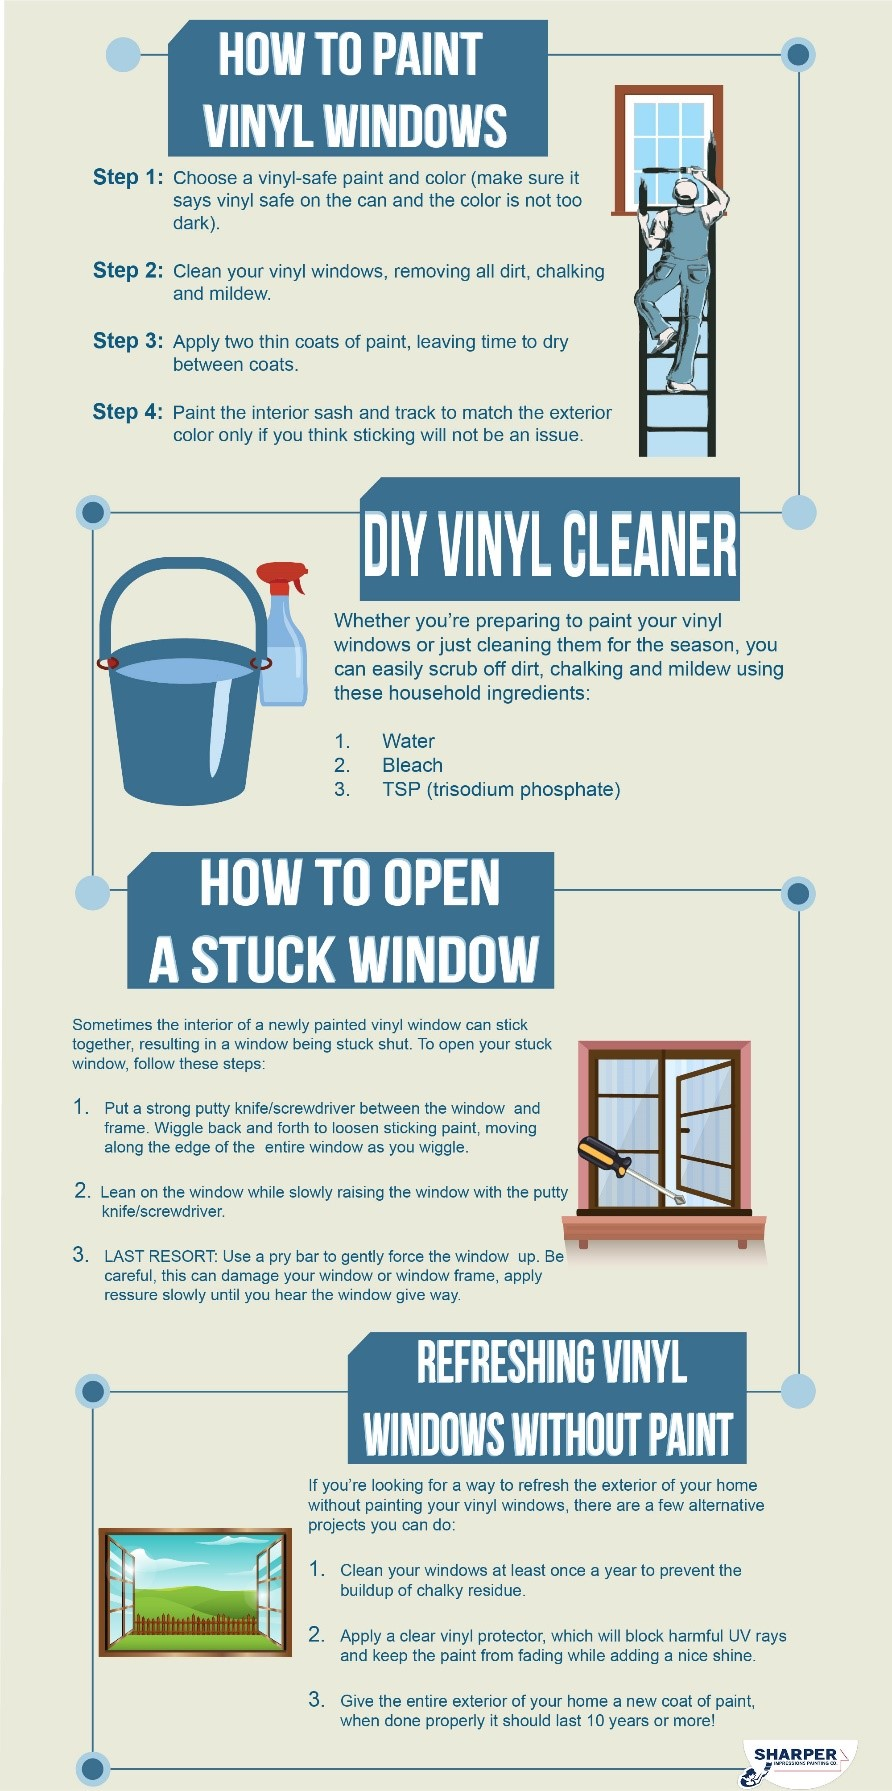 paint-vinyl-windows-infographic-plaza